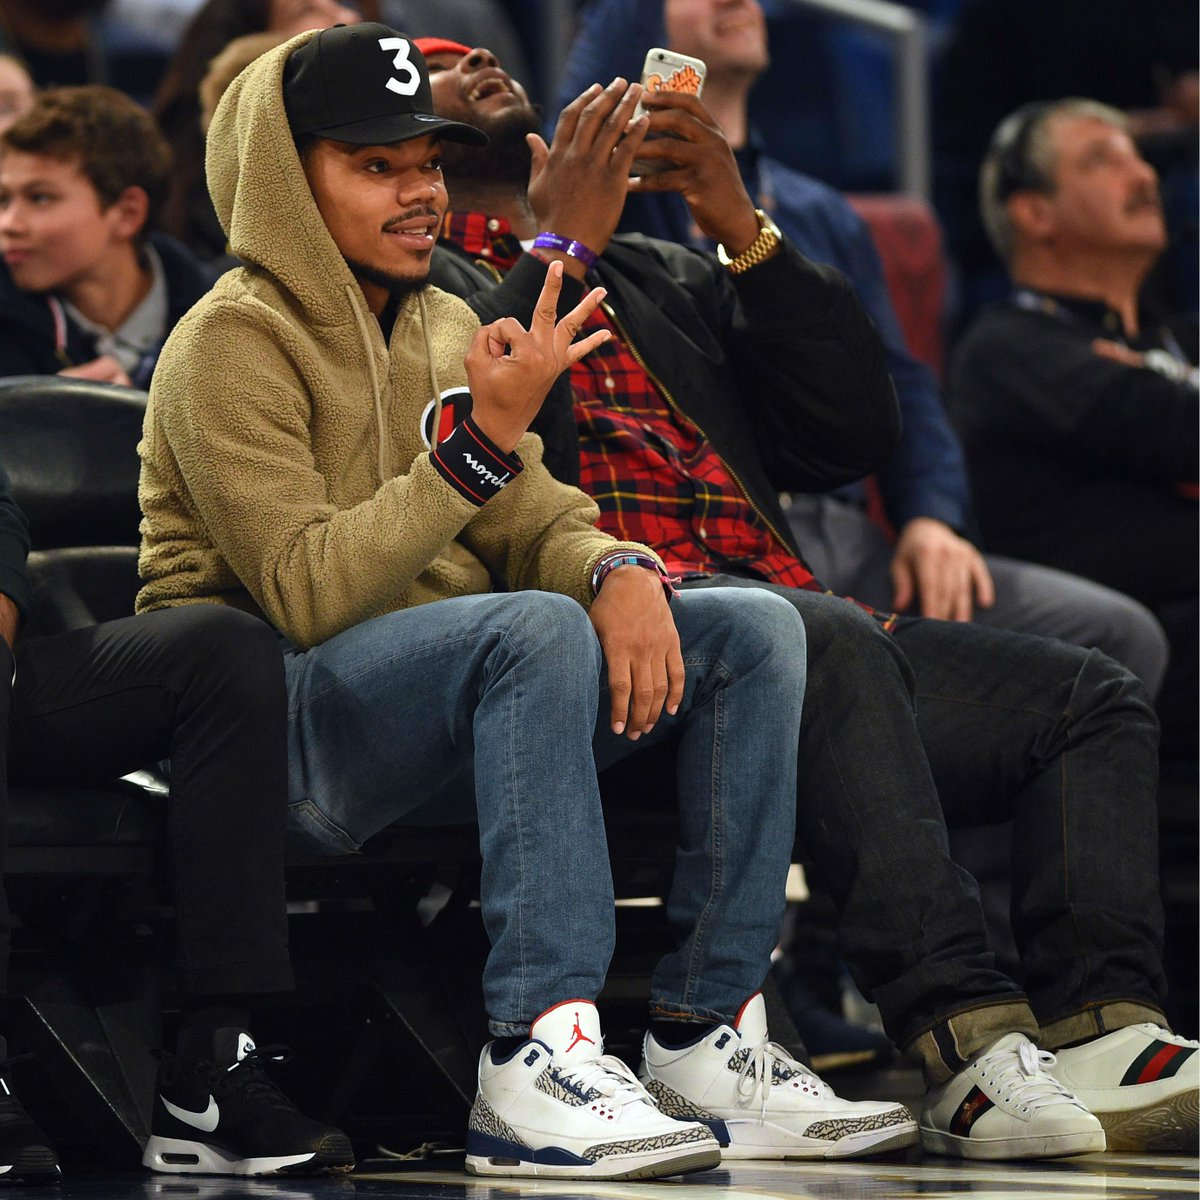 brand new 9c85c 42e4e solewatch: @chancetherapper wearing the